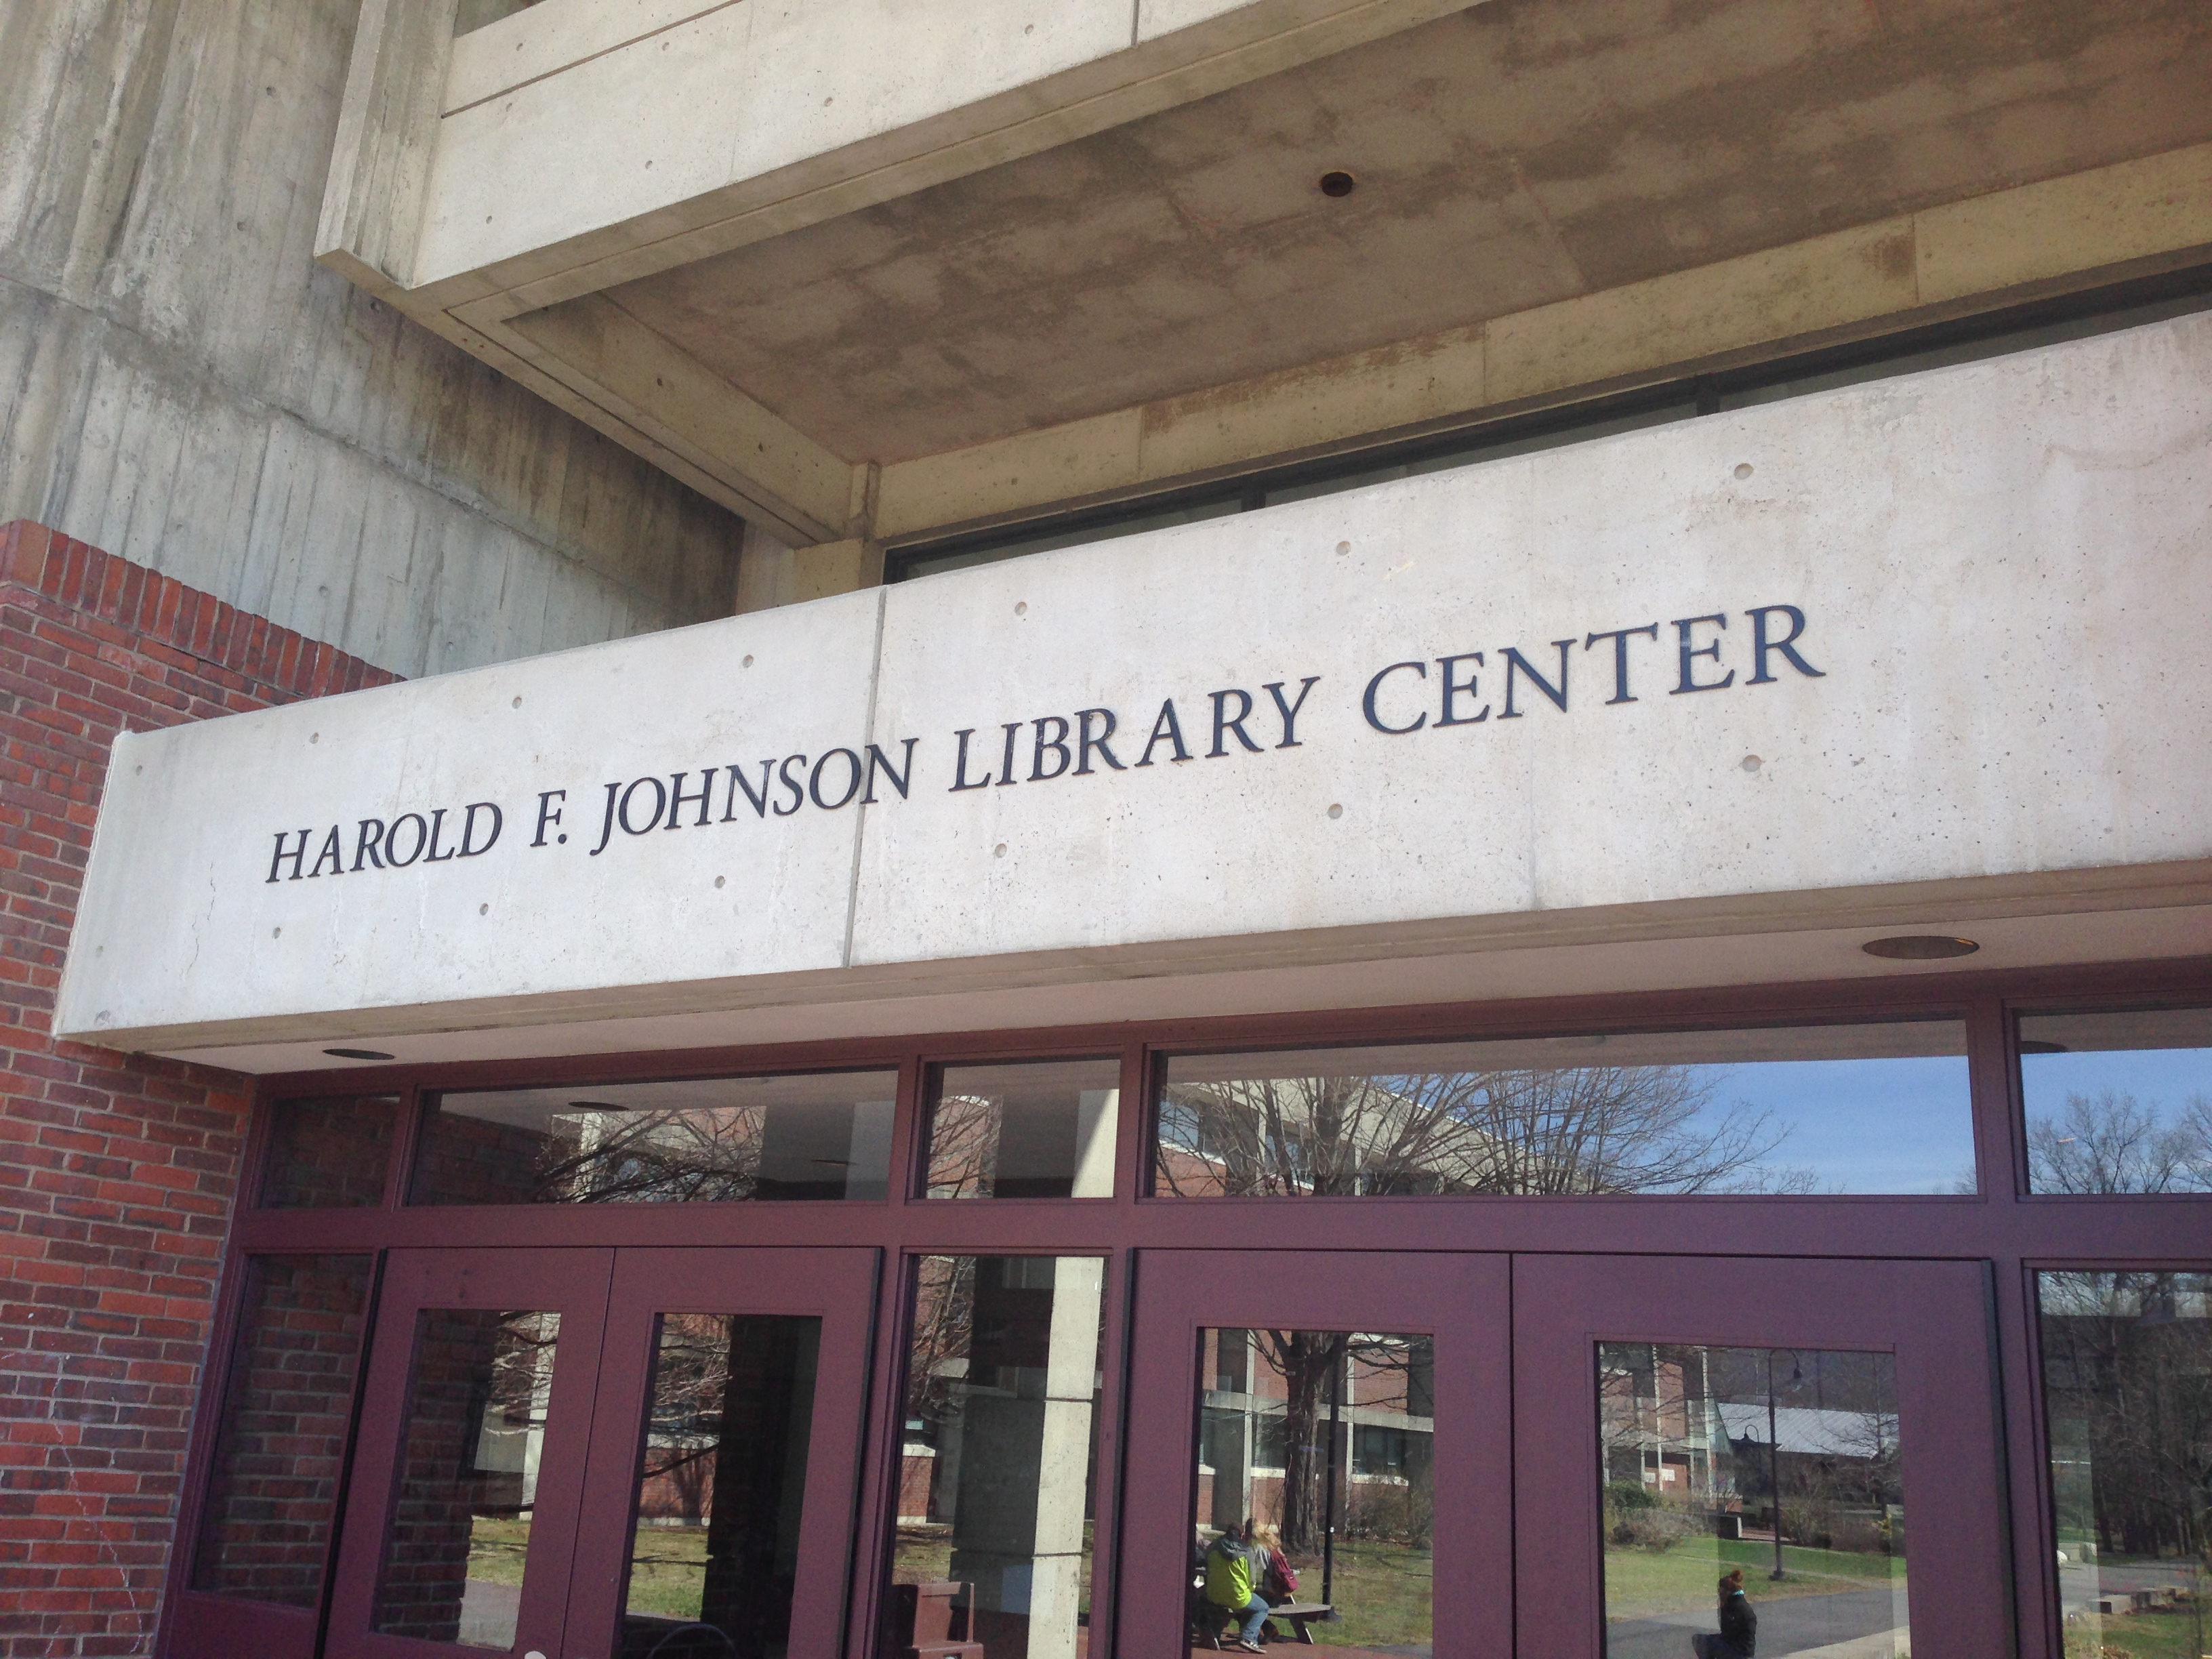 Picture of Harold F. Johnson Library Center